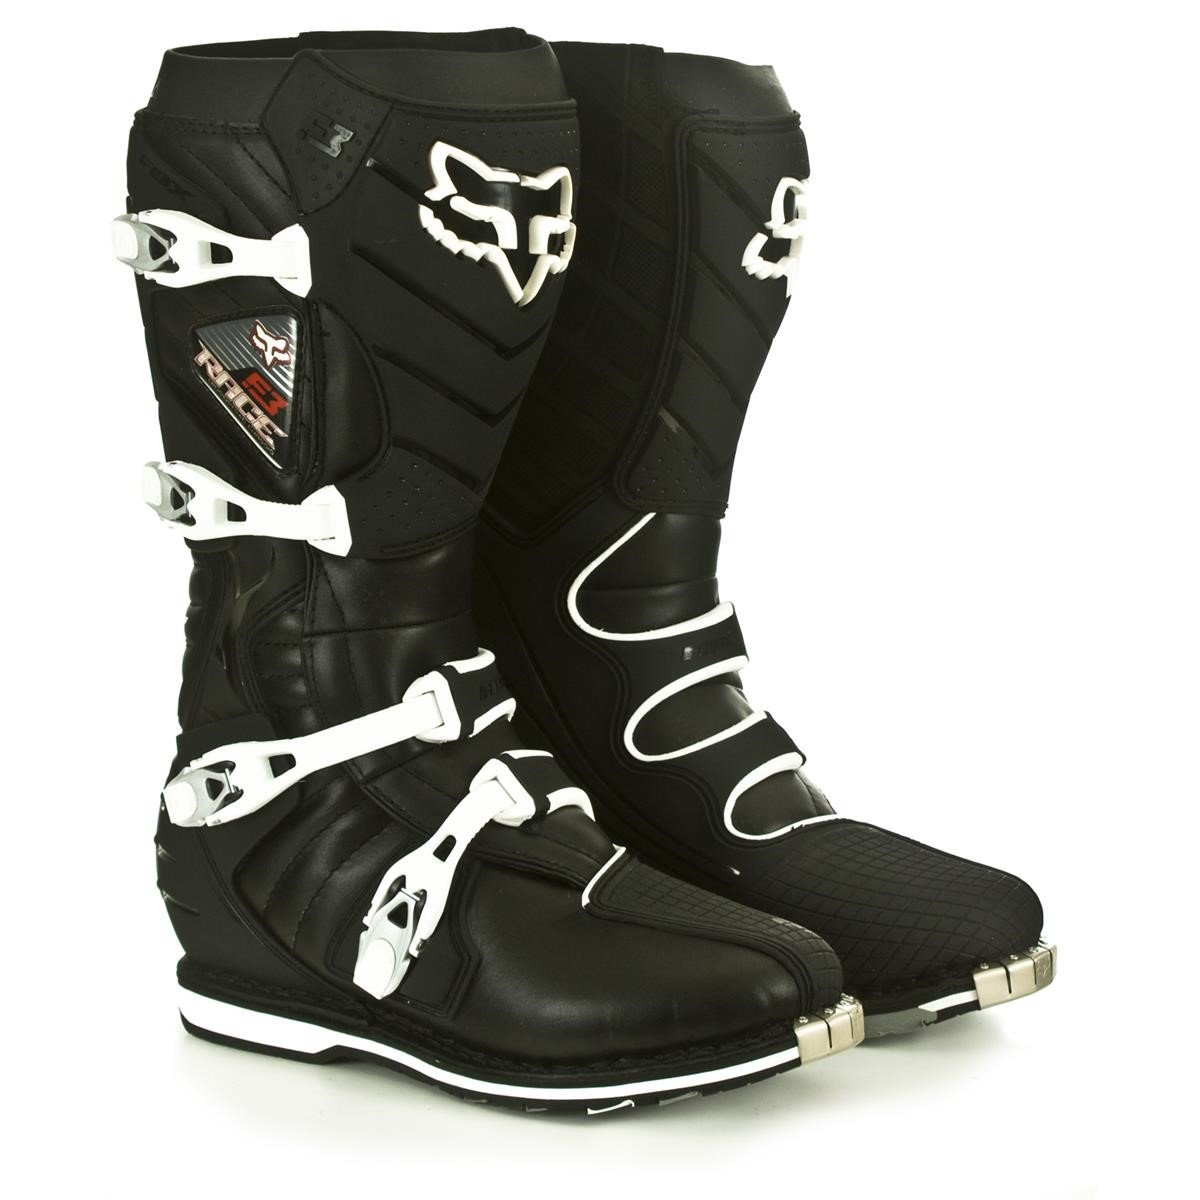 fox motocross stiefel f3 race black 2013 maciag offroad. Black Bedroom Furniture Sets. Home Design Ideas